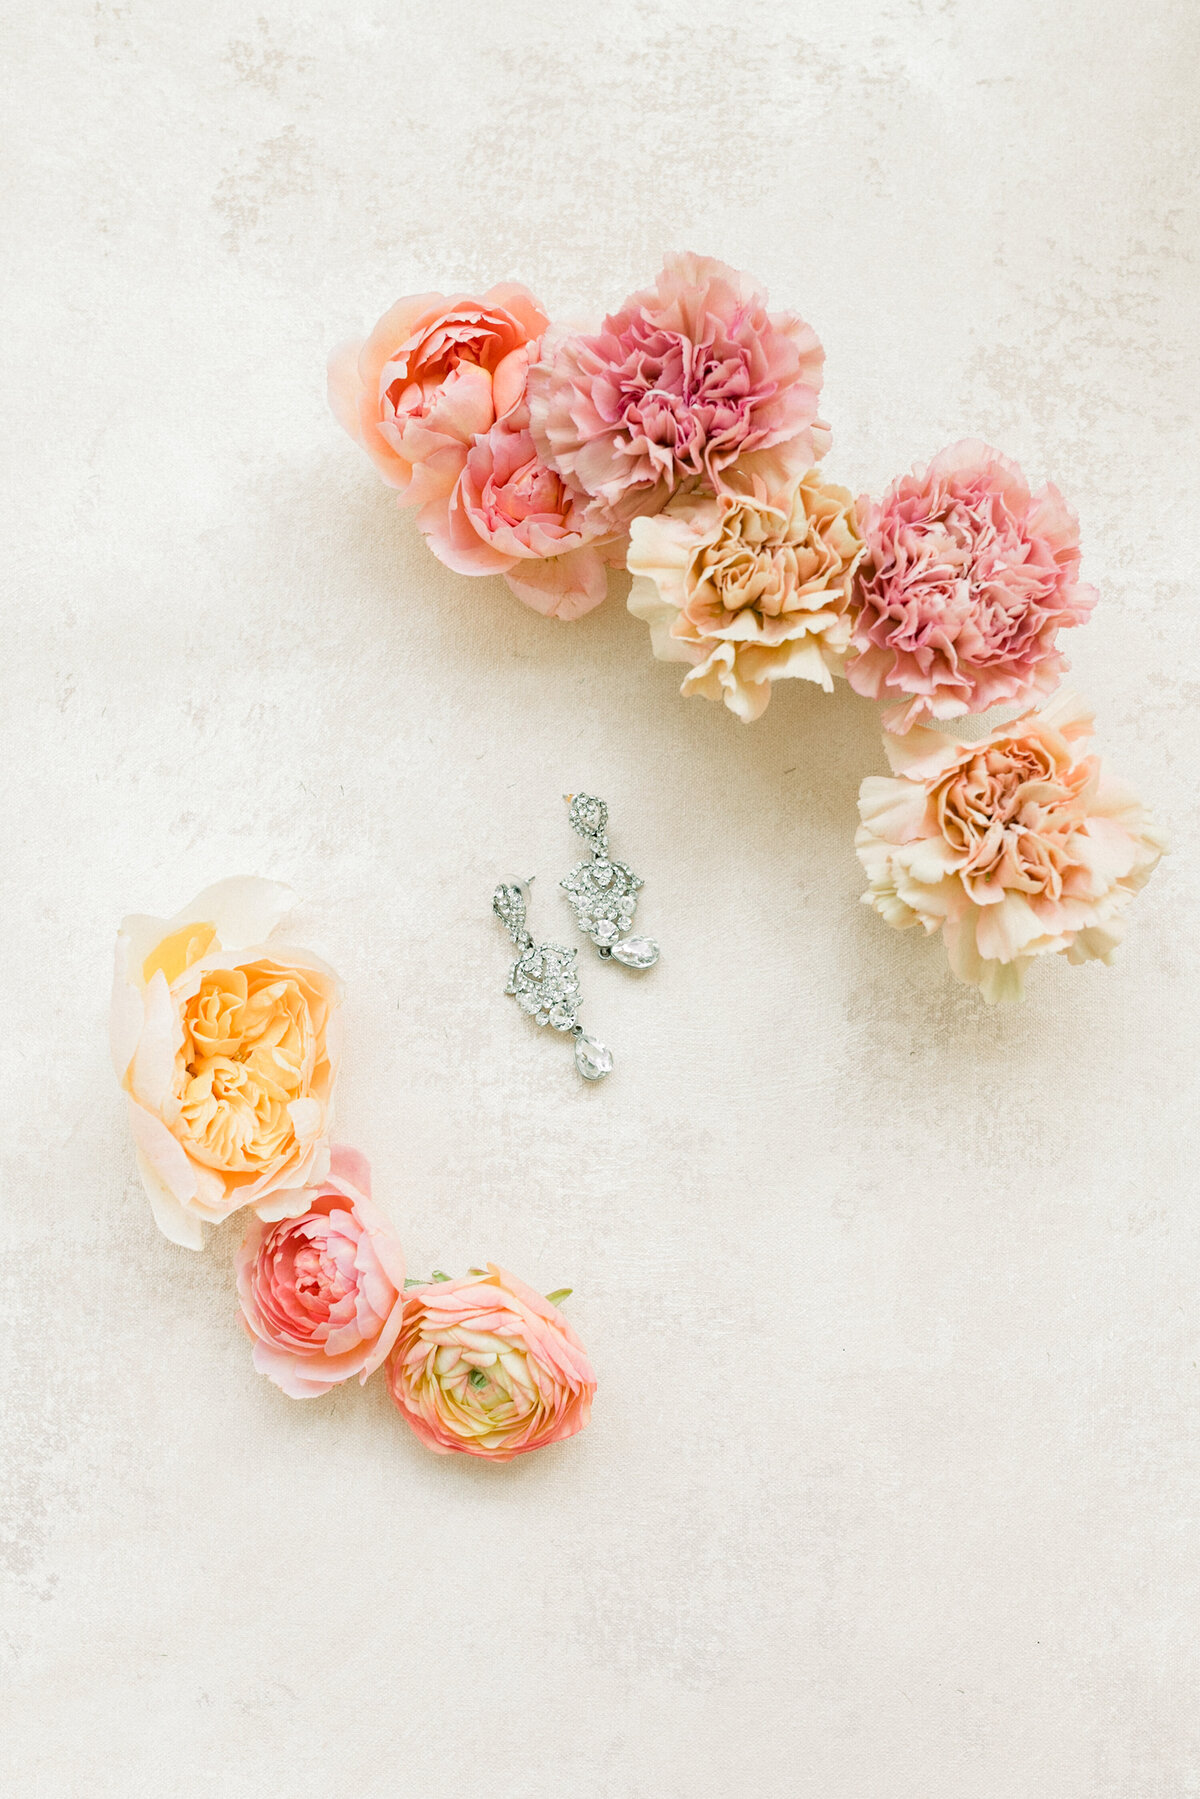 Abella Wedding Photos, Abella Minnesota, Minnesota Bride, Minnesota wedding photographer, Minneapolis wedding photographer, fine art wedding photographer, minnesota fine art wedding photographer, minneapolis wedding photographer, wedding earrings